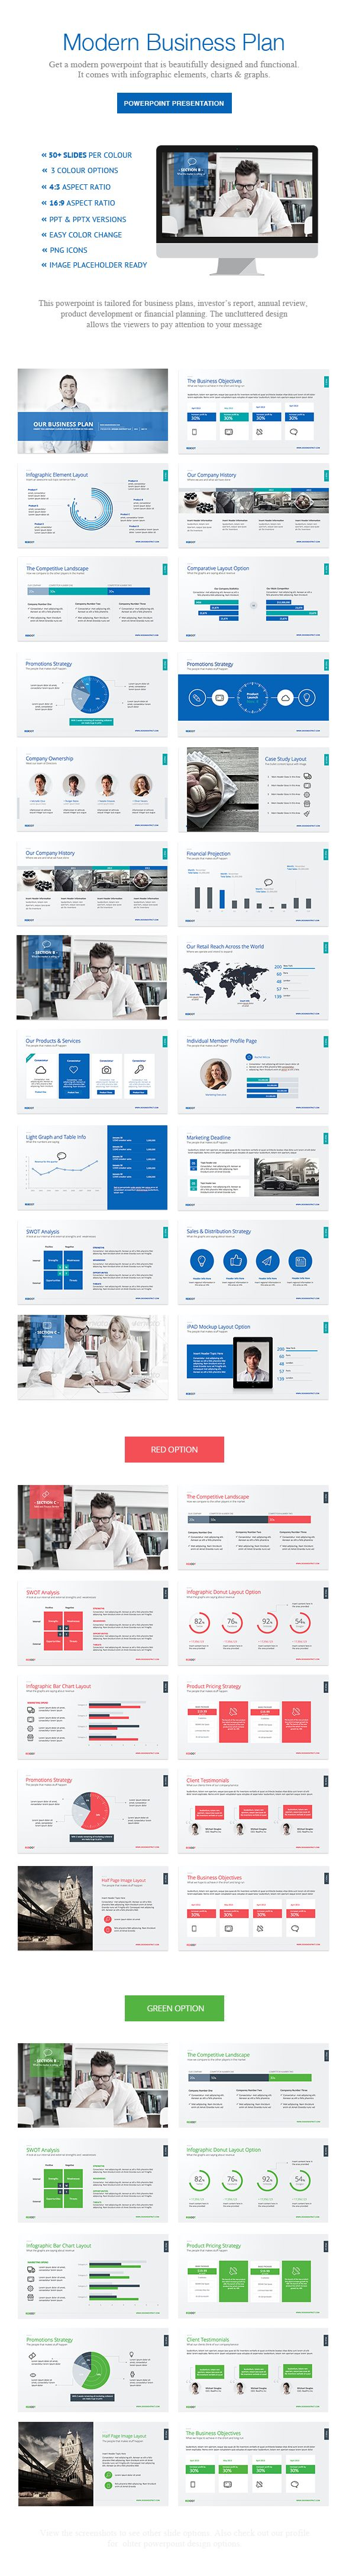 Business Plan Powerpoint by